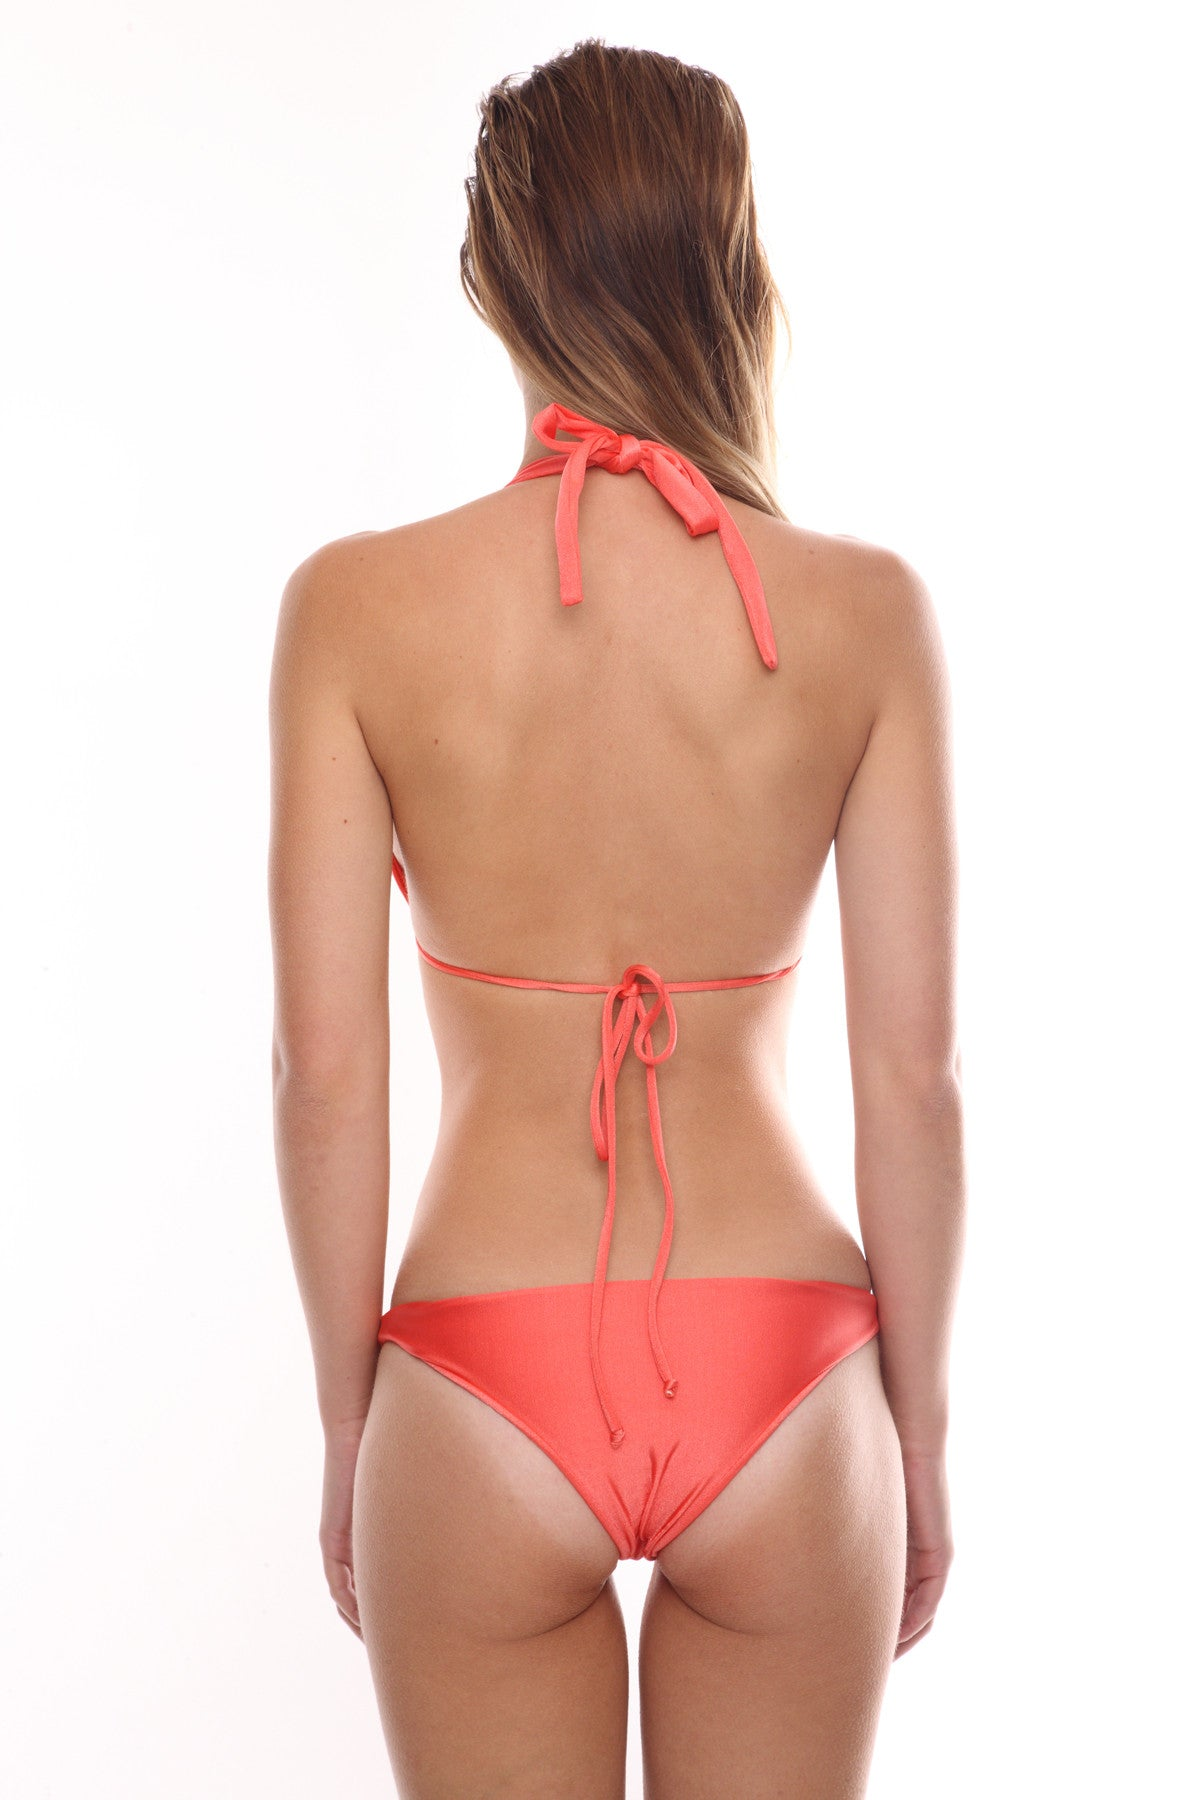 Midnight Swimwear-Tulum Bikini Top and Miami Pant